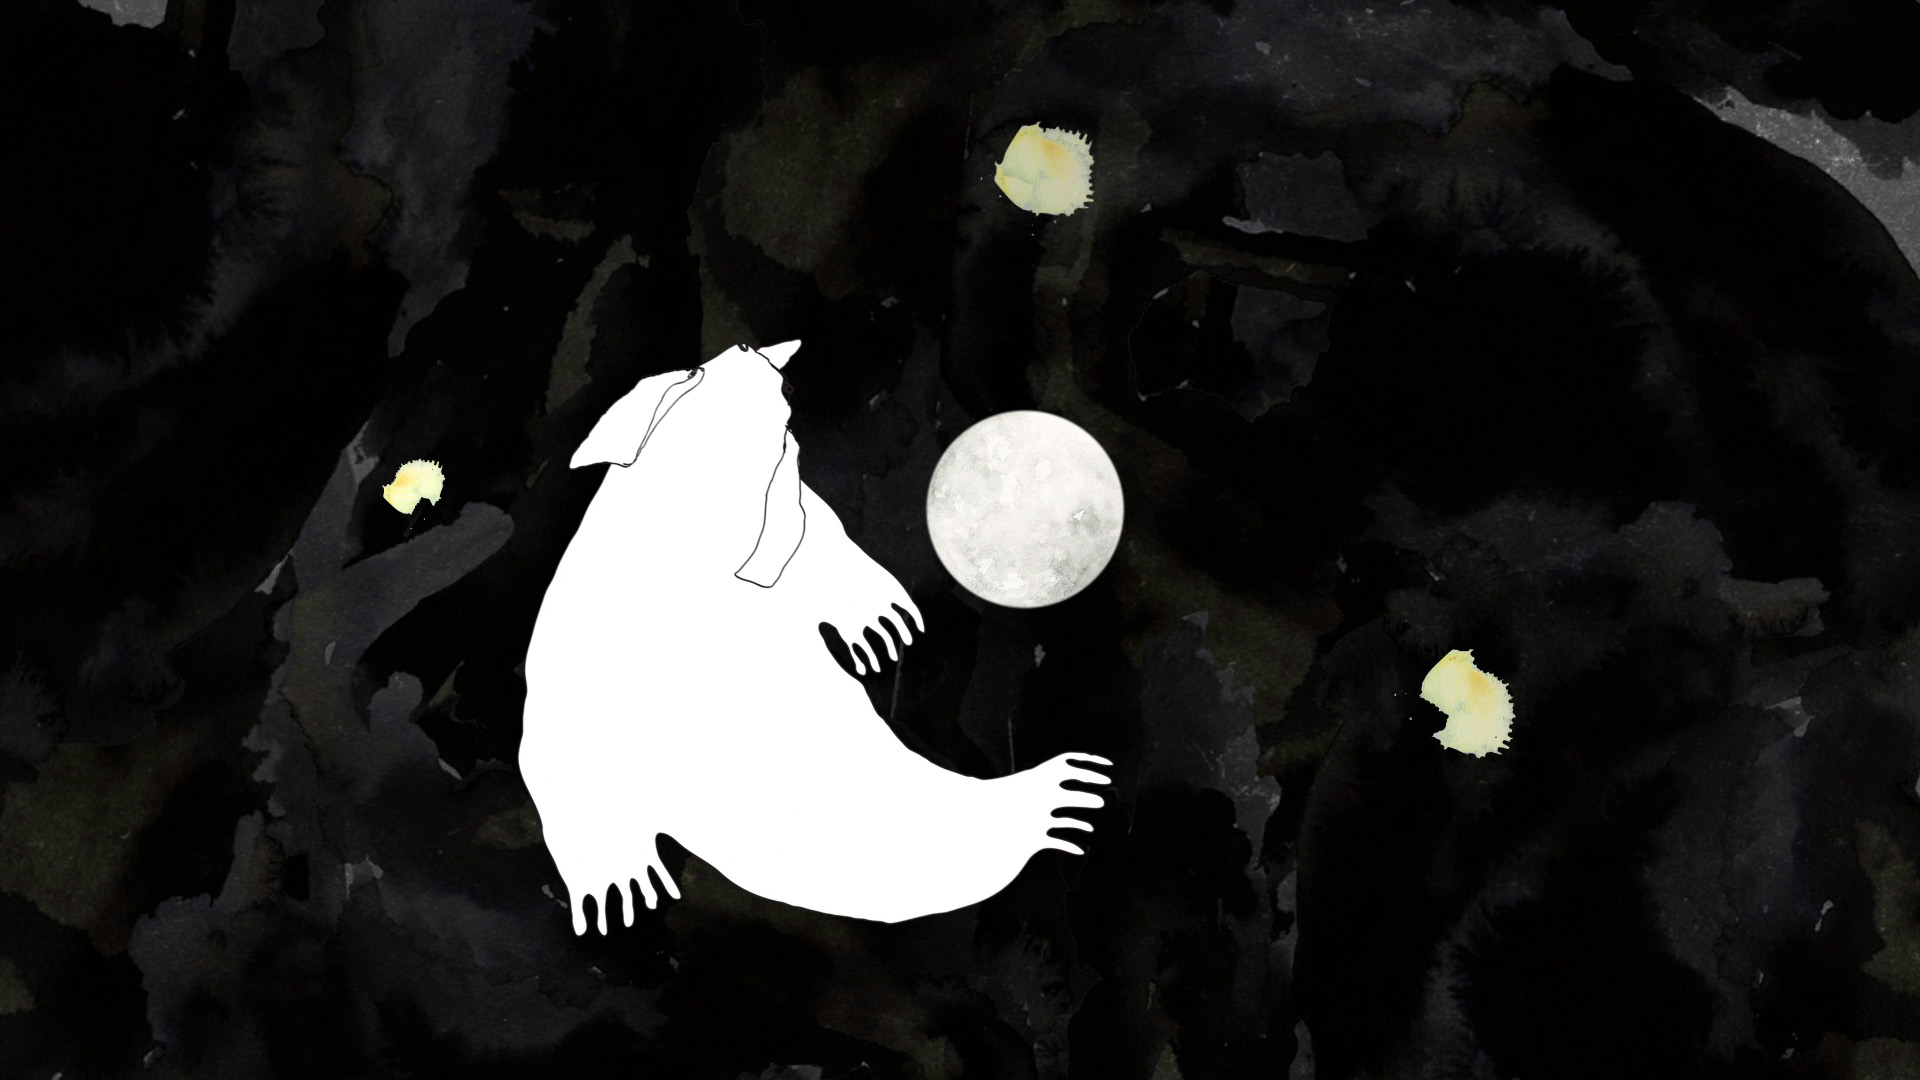 Strange elephant potato creature is flying into the moon